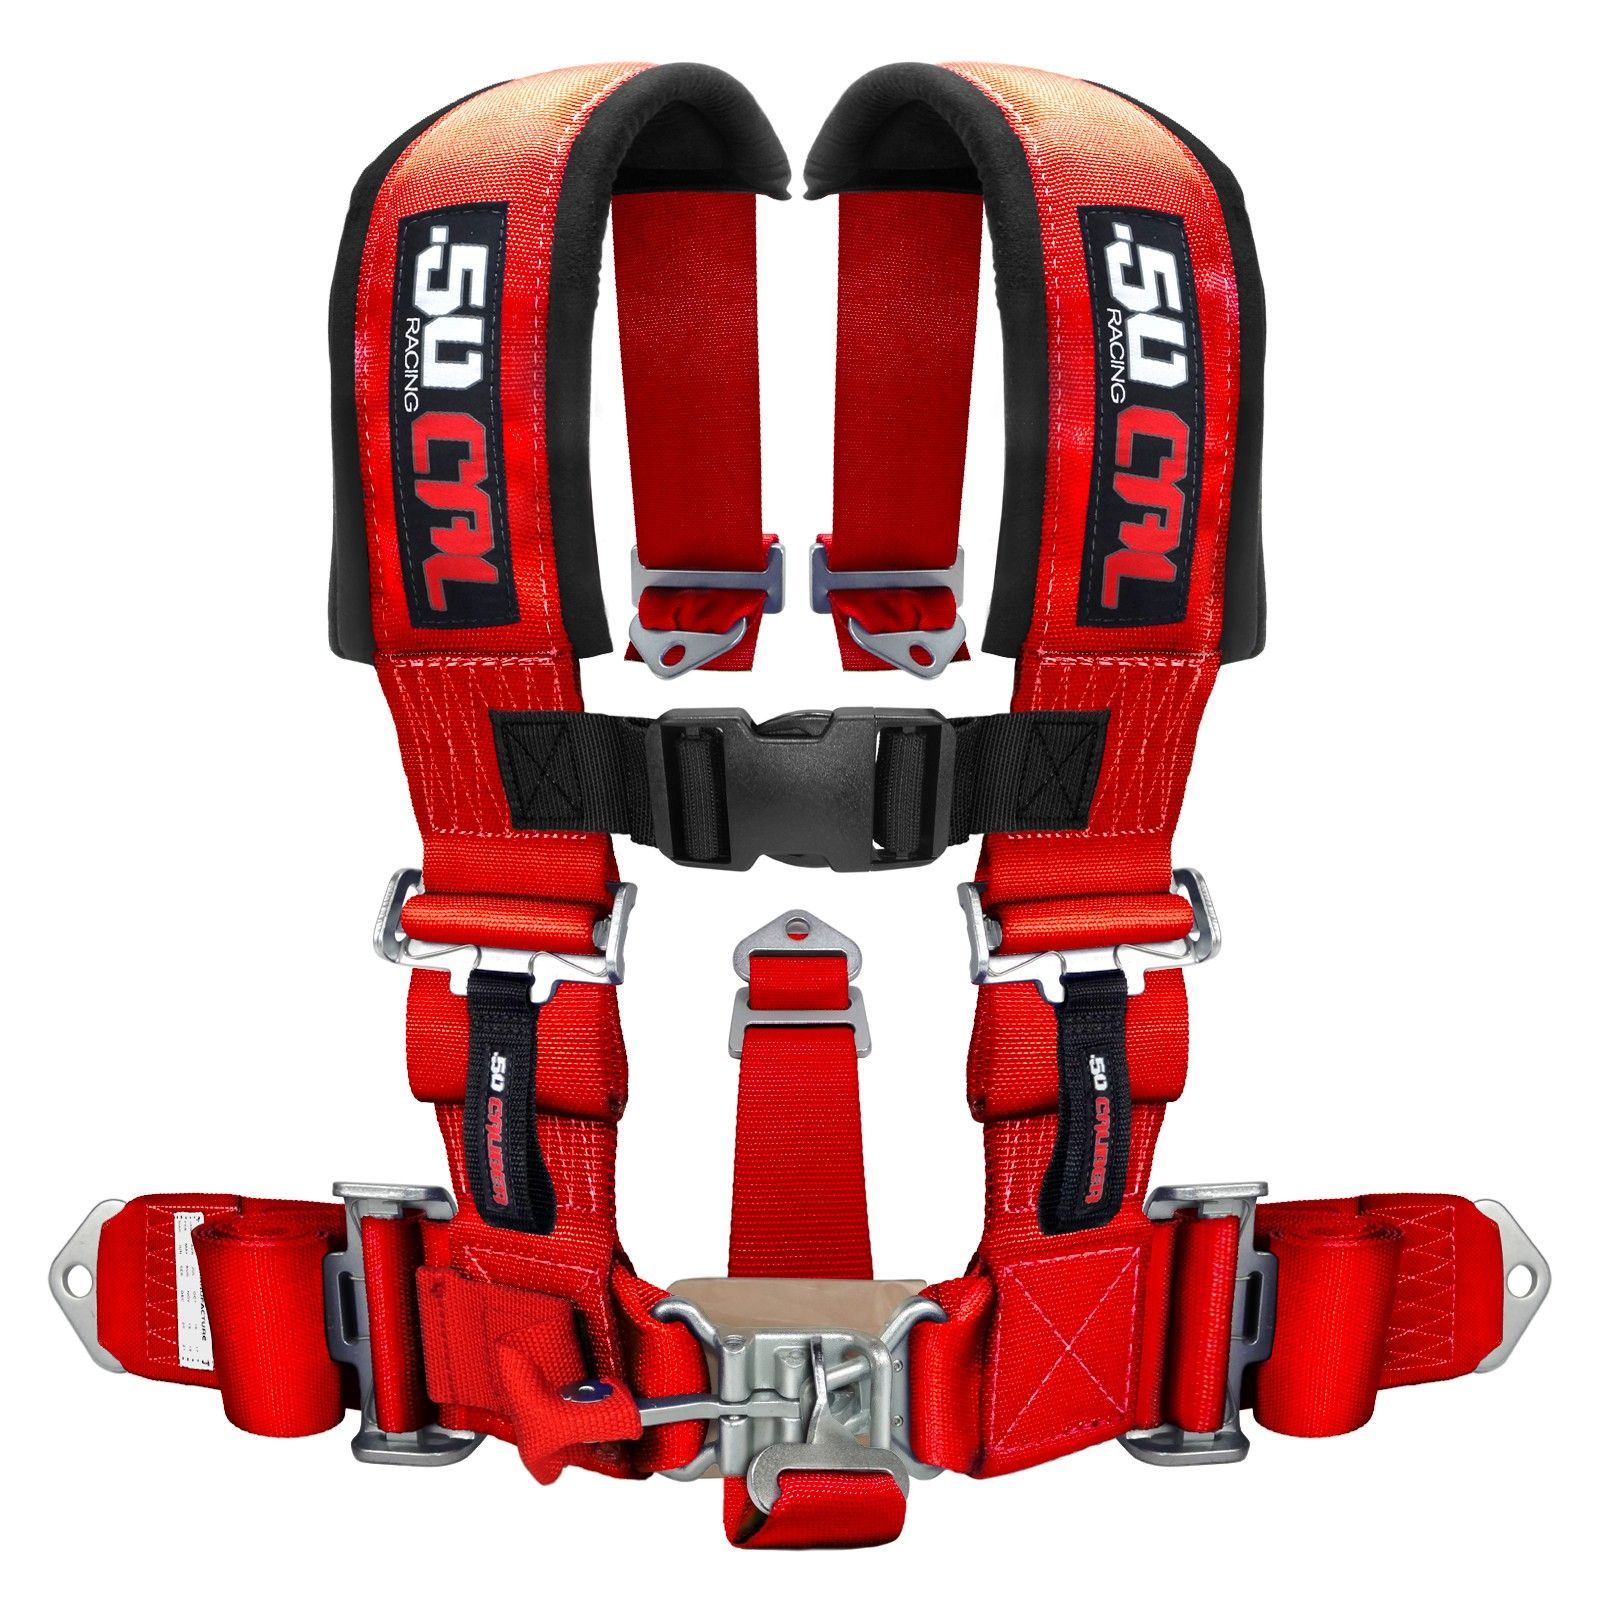 3 5 Point Racing Safety Harness Seat Belt W Crotch Strap